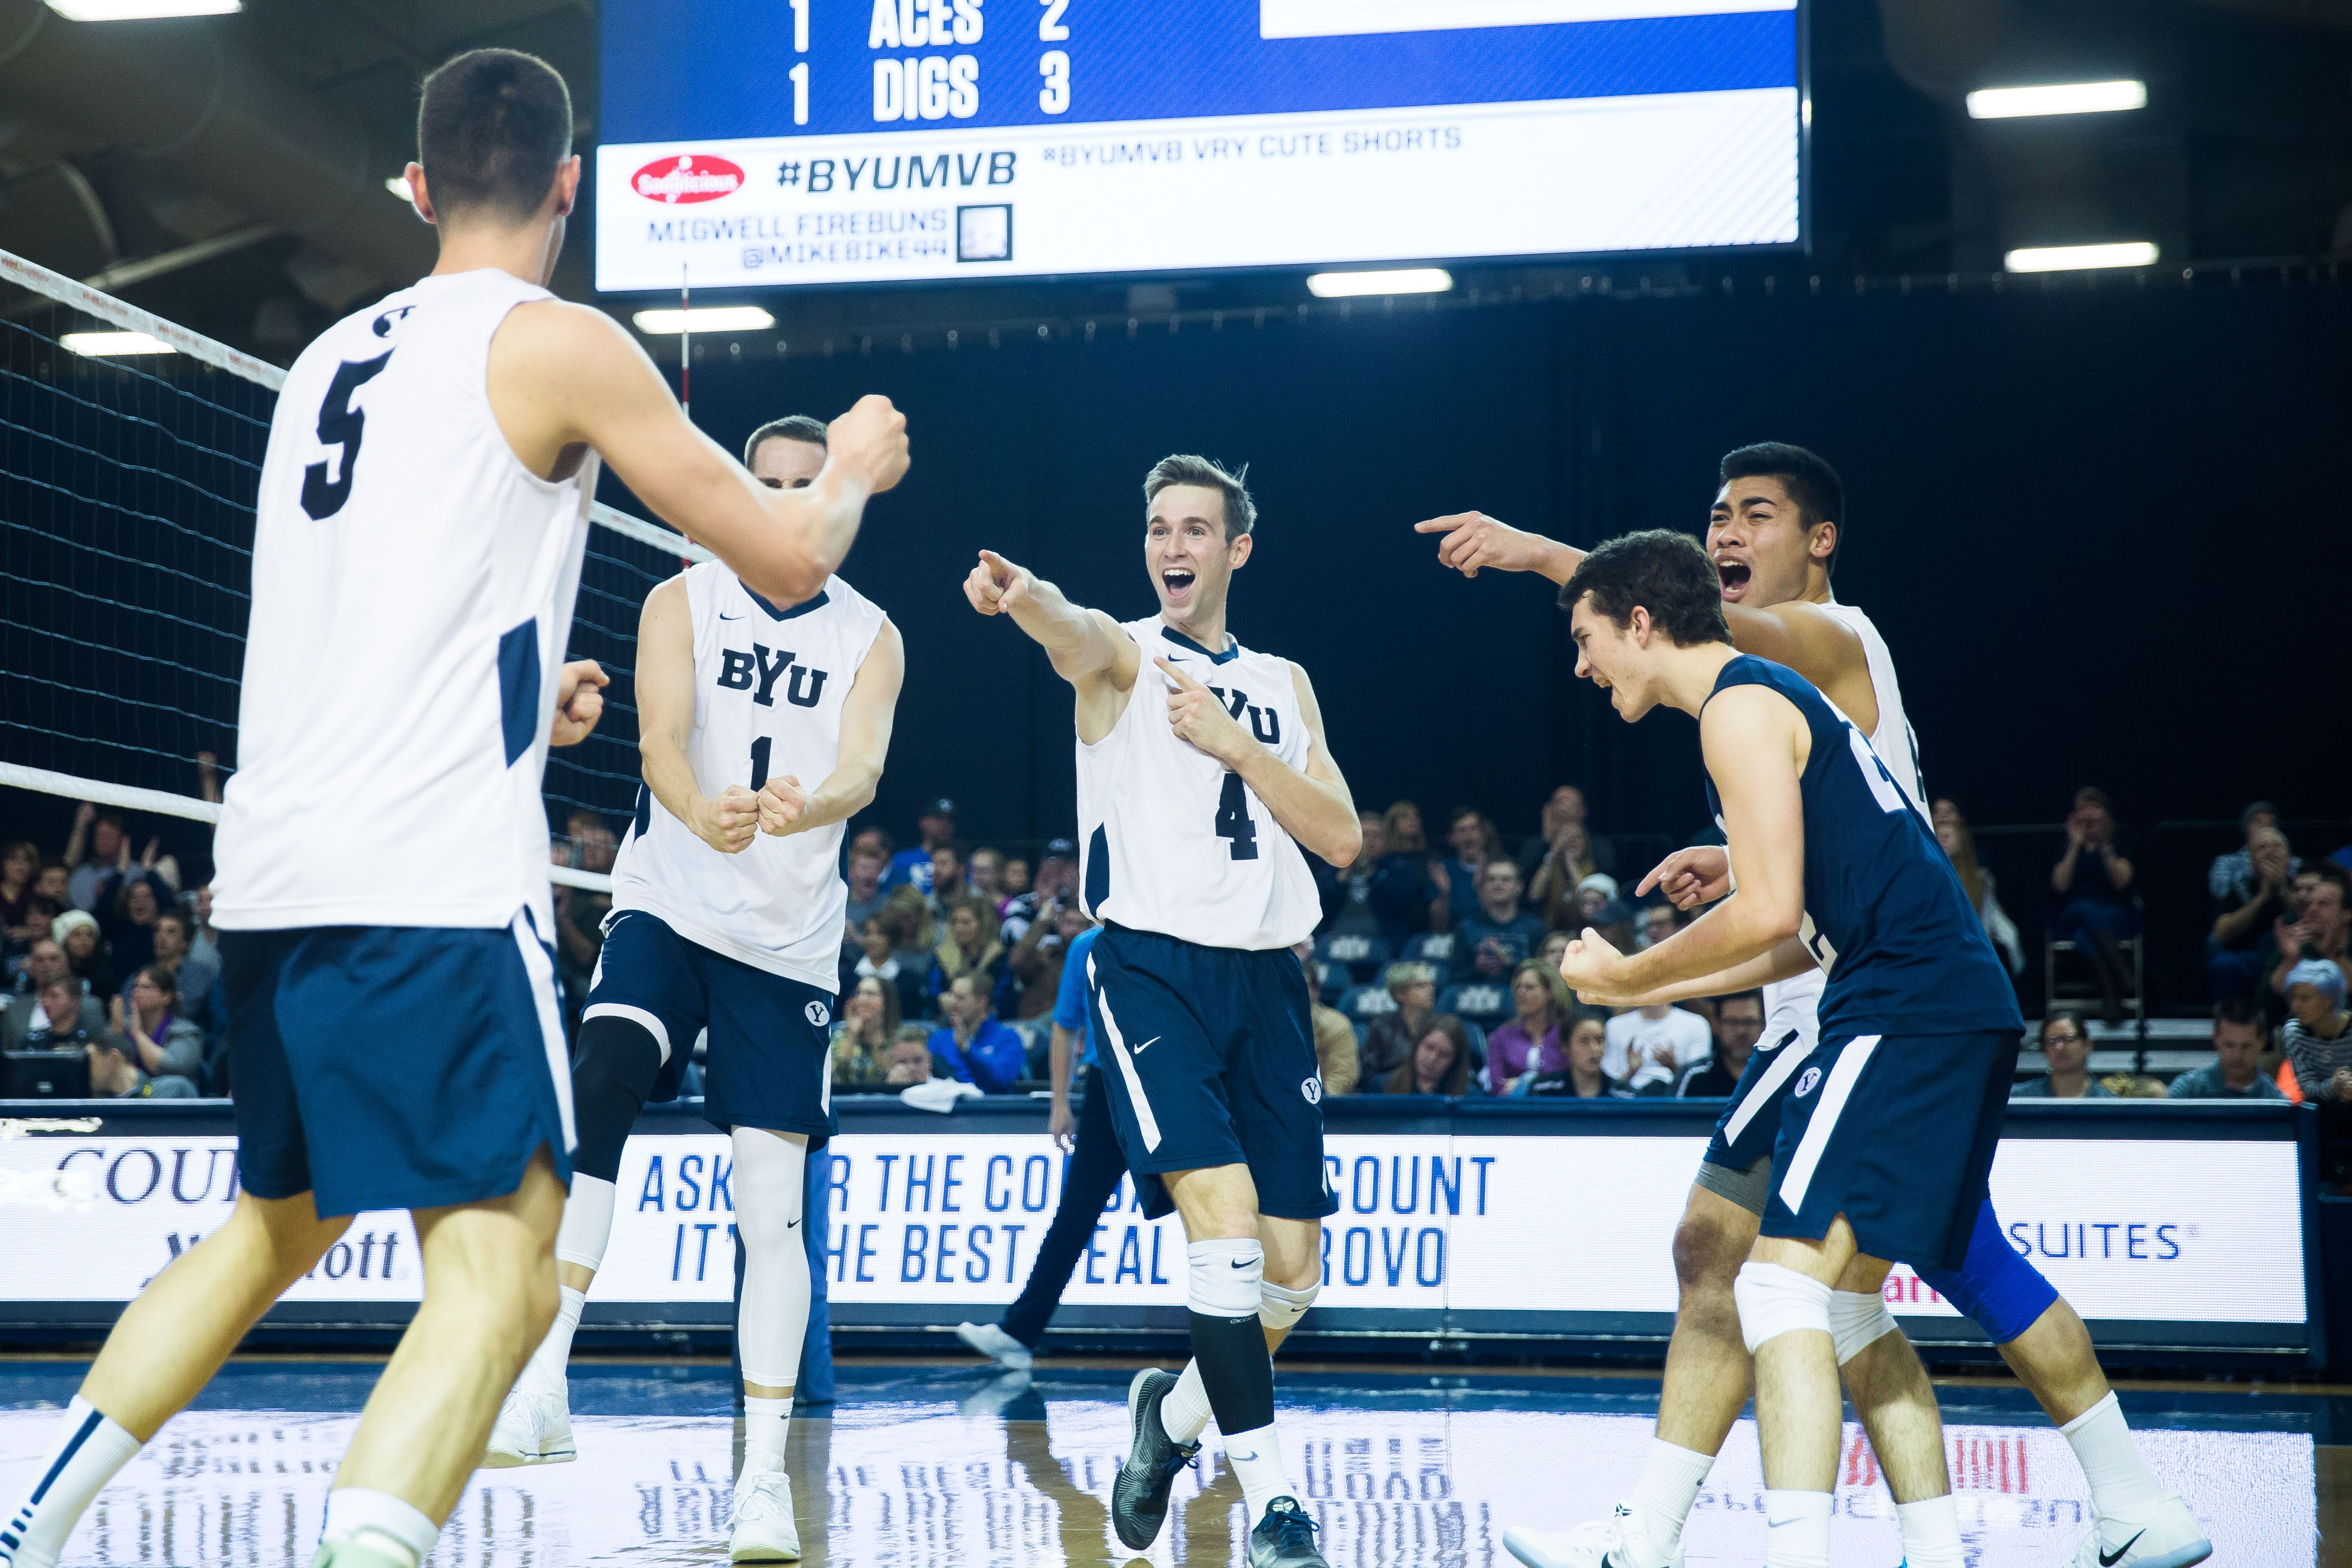 Byu Men S Volleyball Preparing For Big 2017 Season The Daily Universe Mens Volleyball Byu Sports Byu